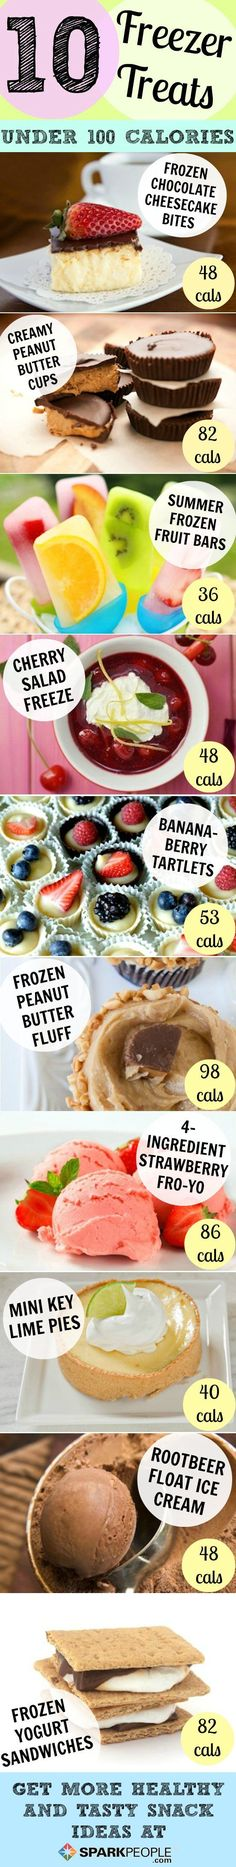 10 Freezer Treats under 100 Calories | via @SparkPeople #snacks #healthy #dessert #treat #diet #weightloss #100calories